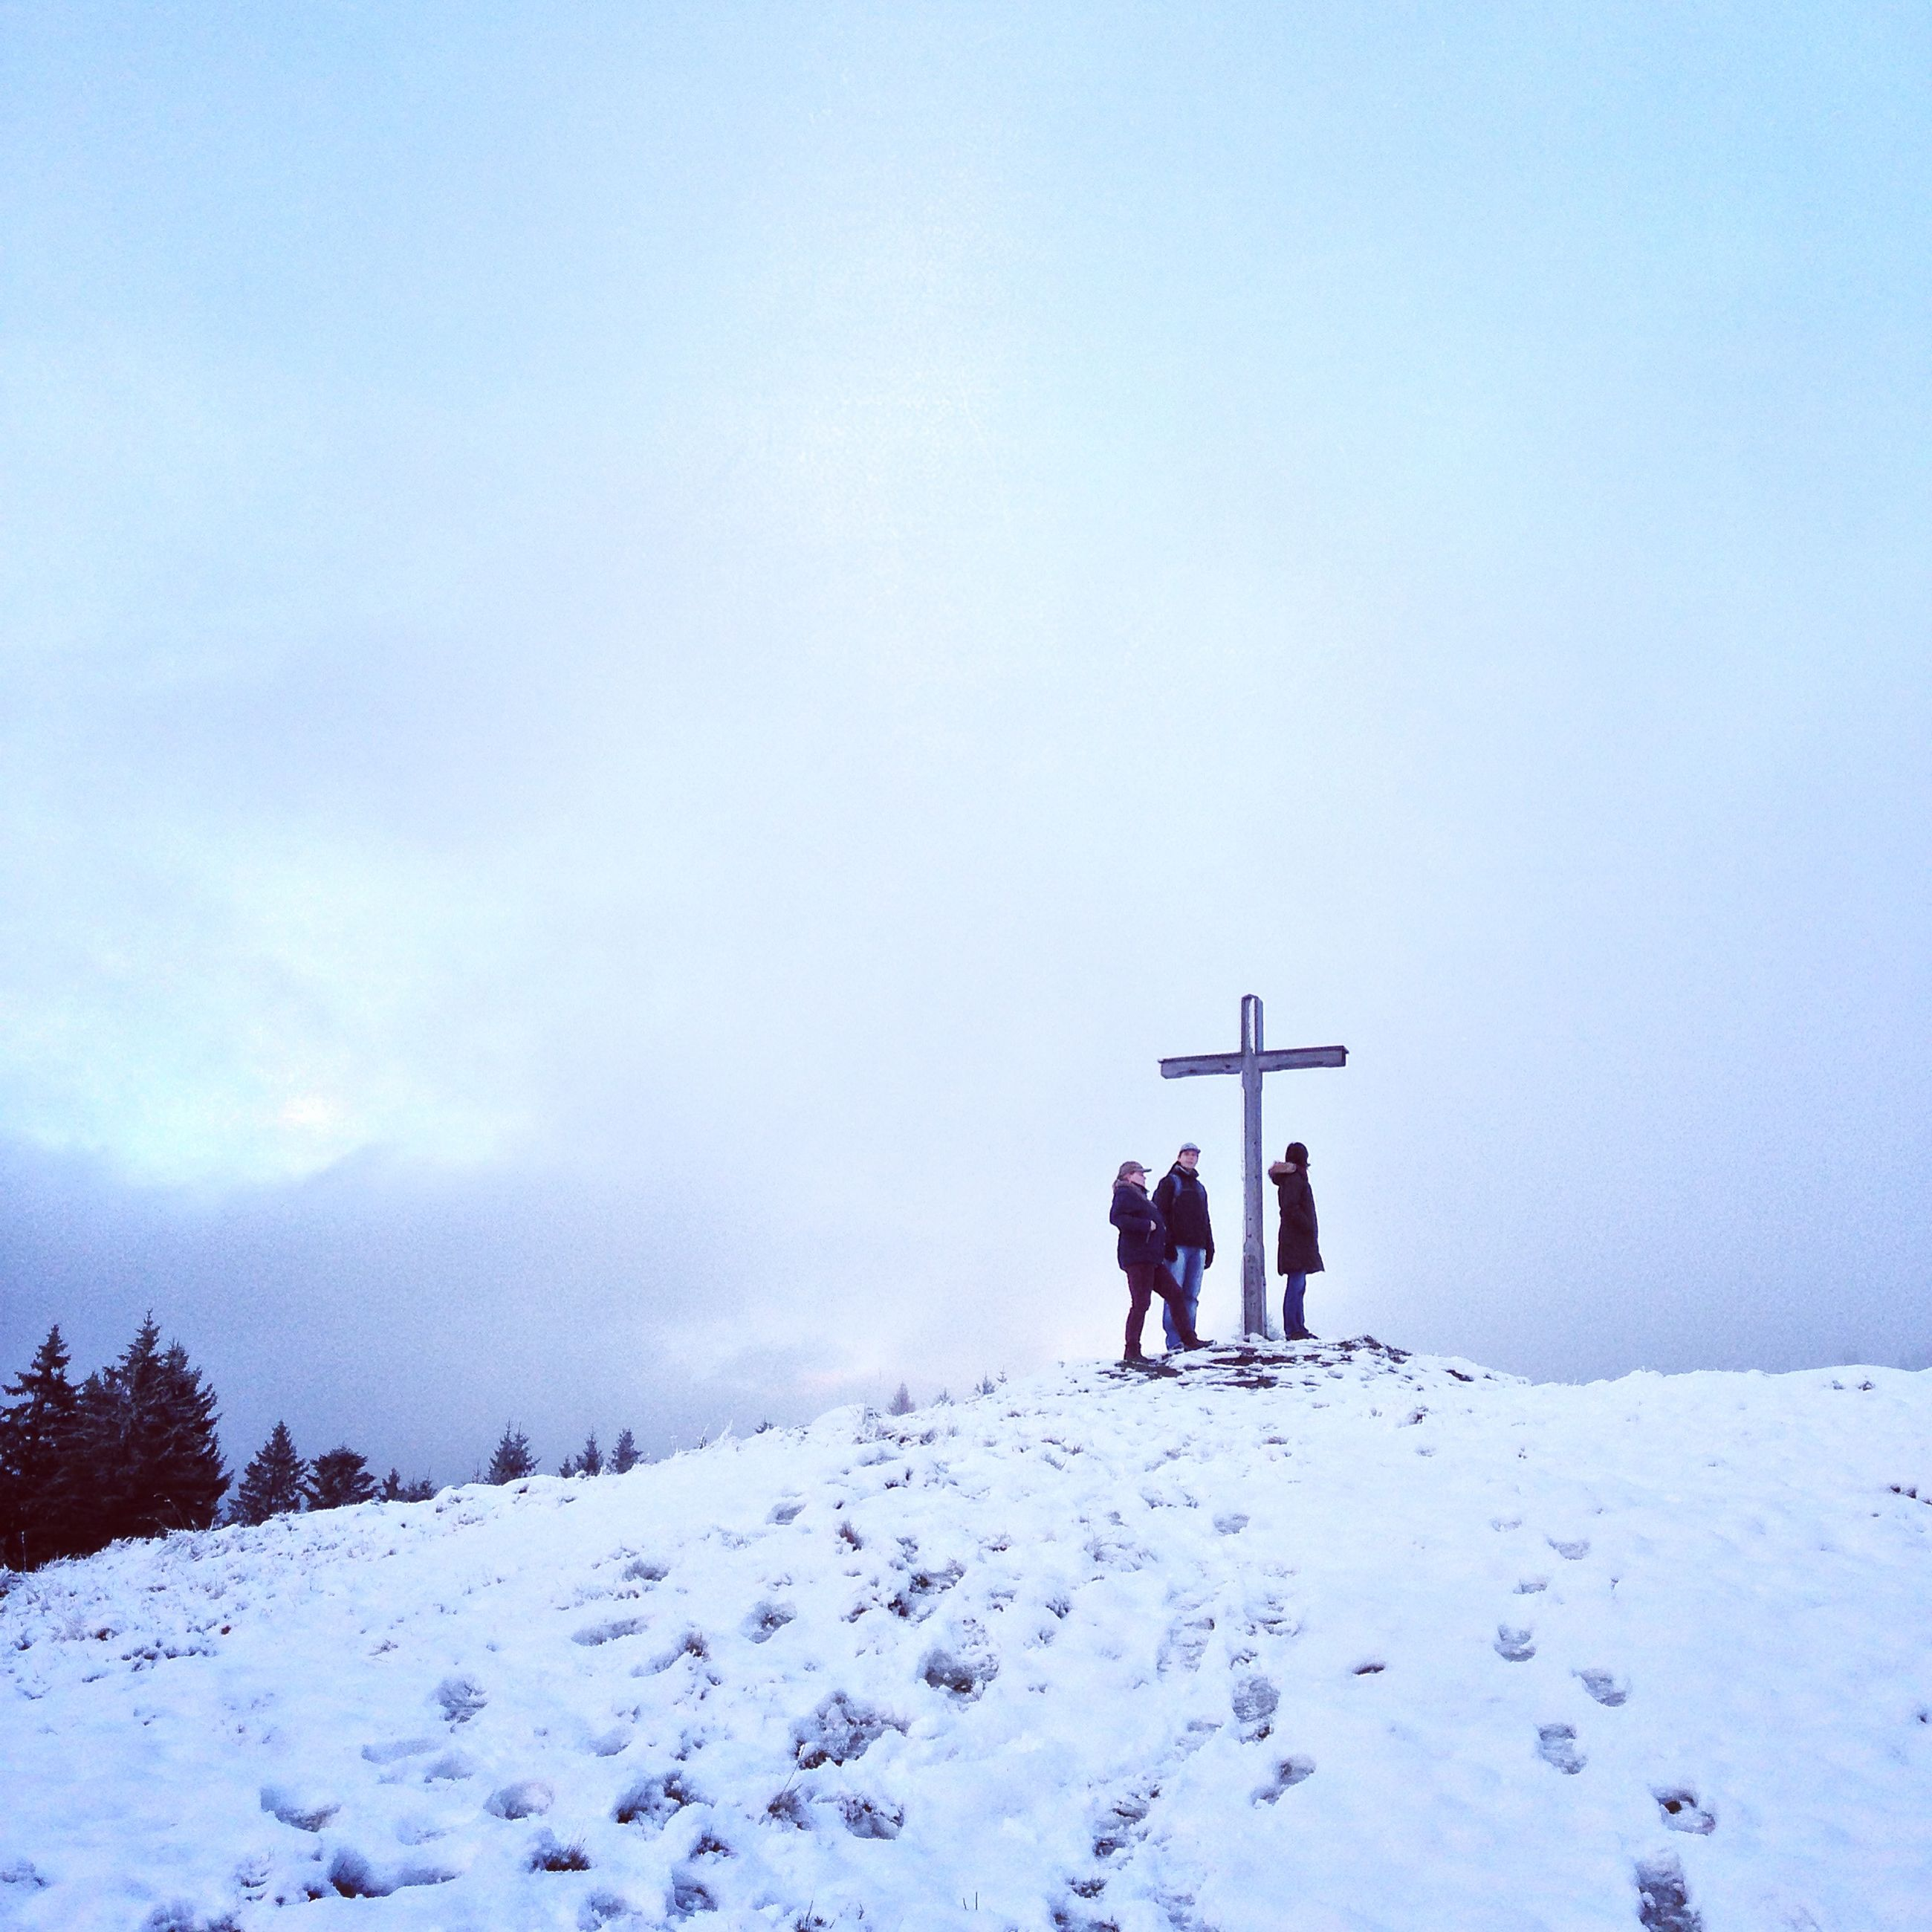 snow, winter, cold temperature, season, leisure activity, weather, lifestyles, men, landscape, tranquil scene, full length, tranquility, copy space, nature, rear view, covering, beauty in nature, mountain